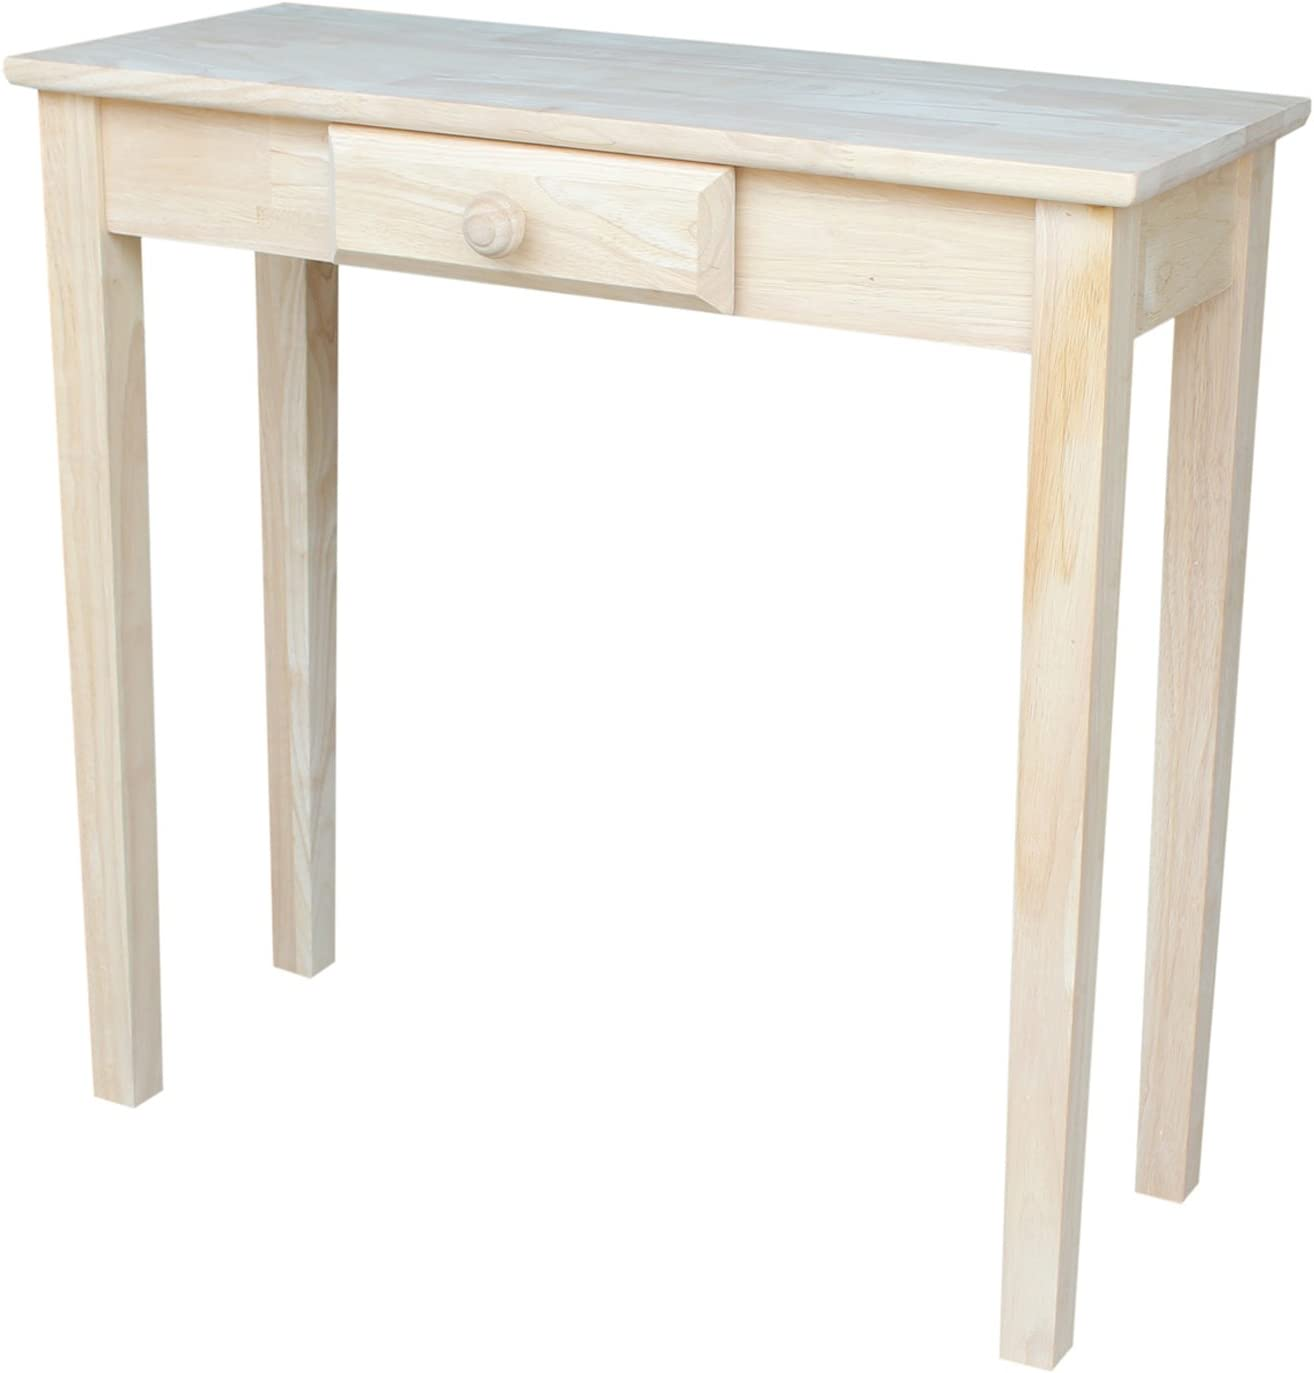 International Concepts Rectangular Hall Table, Unfinished